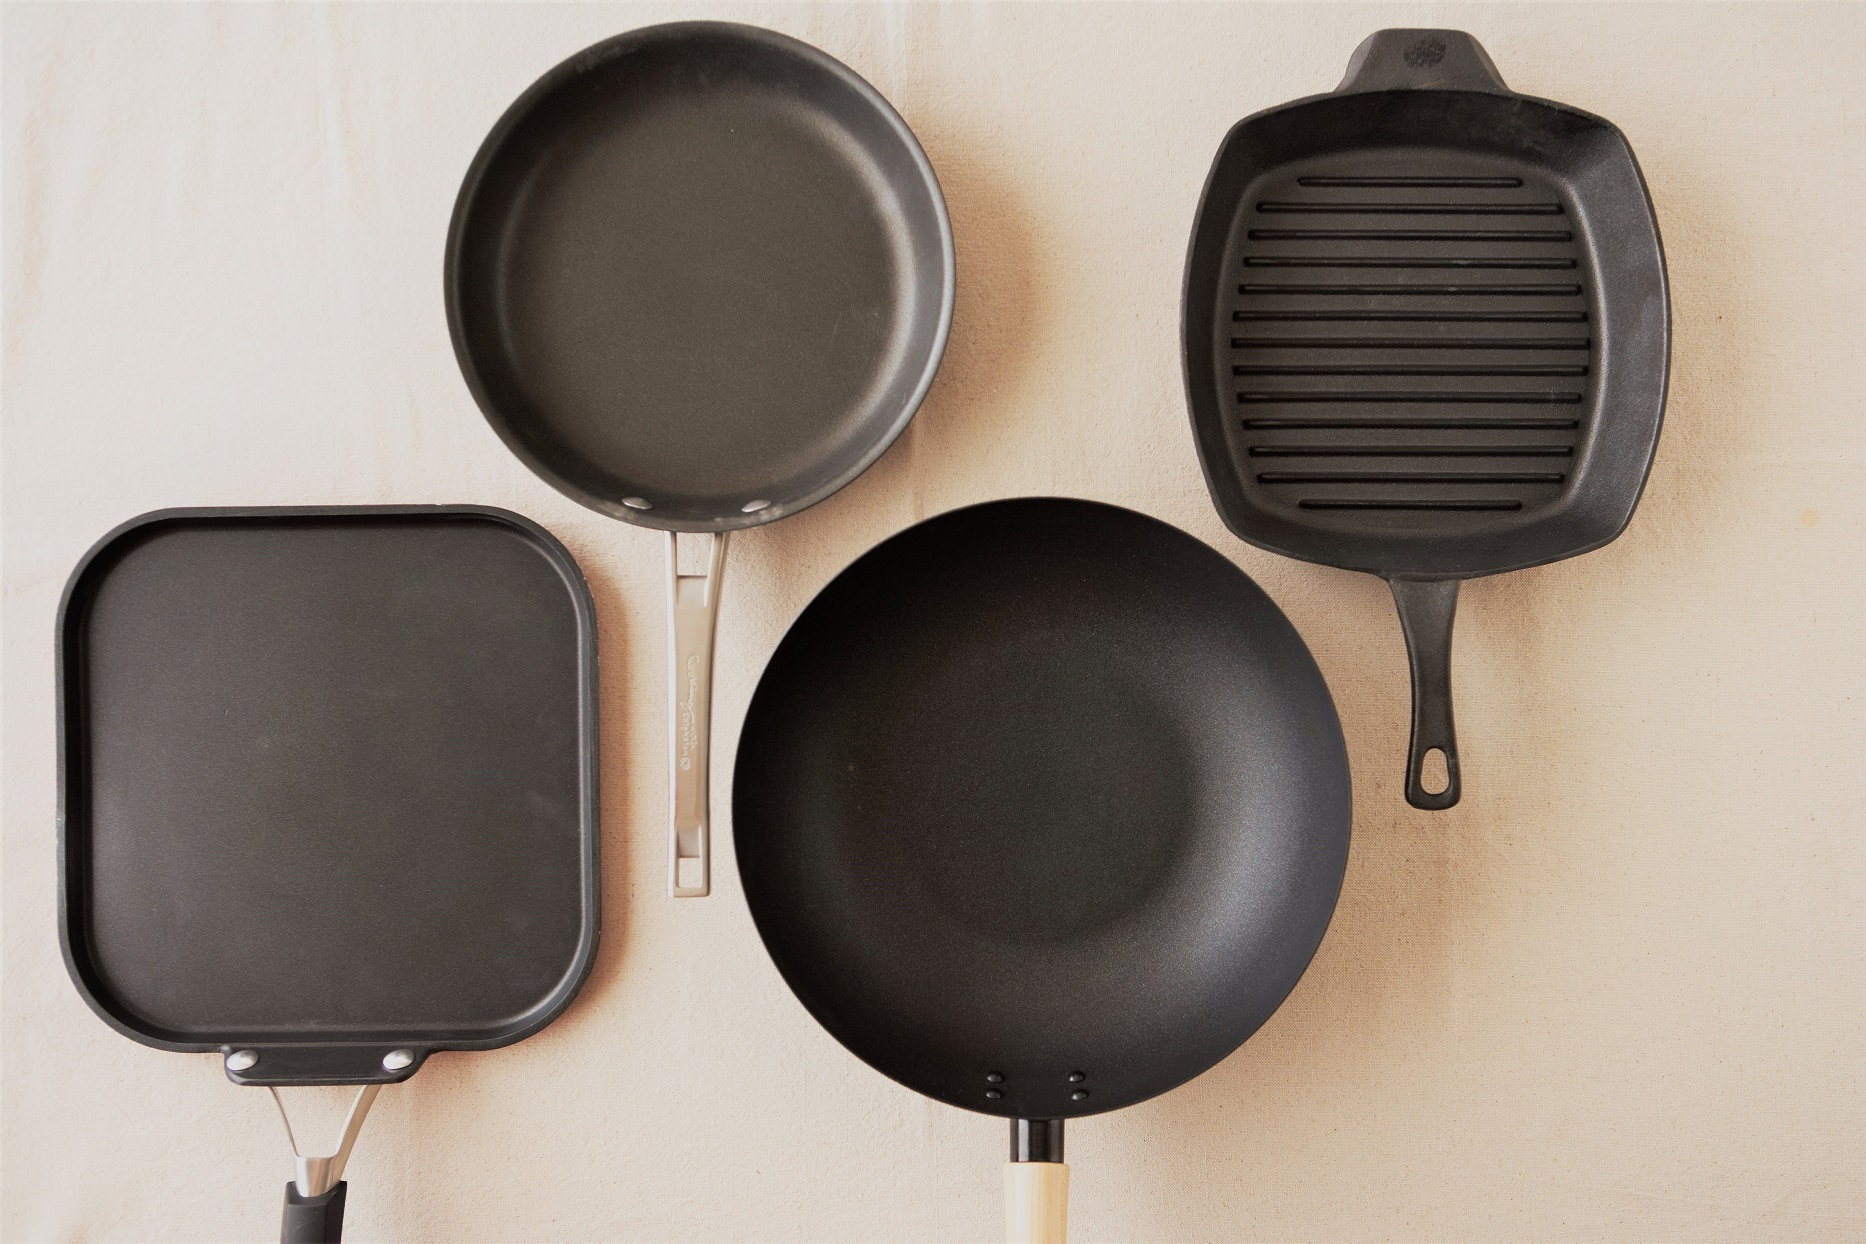 Four Frying Pans On Canvas Background